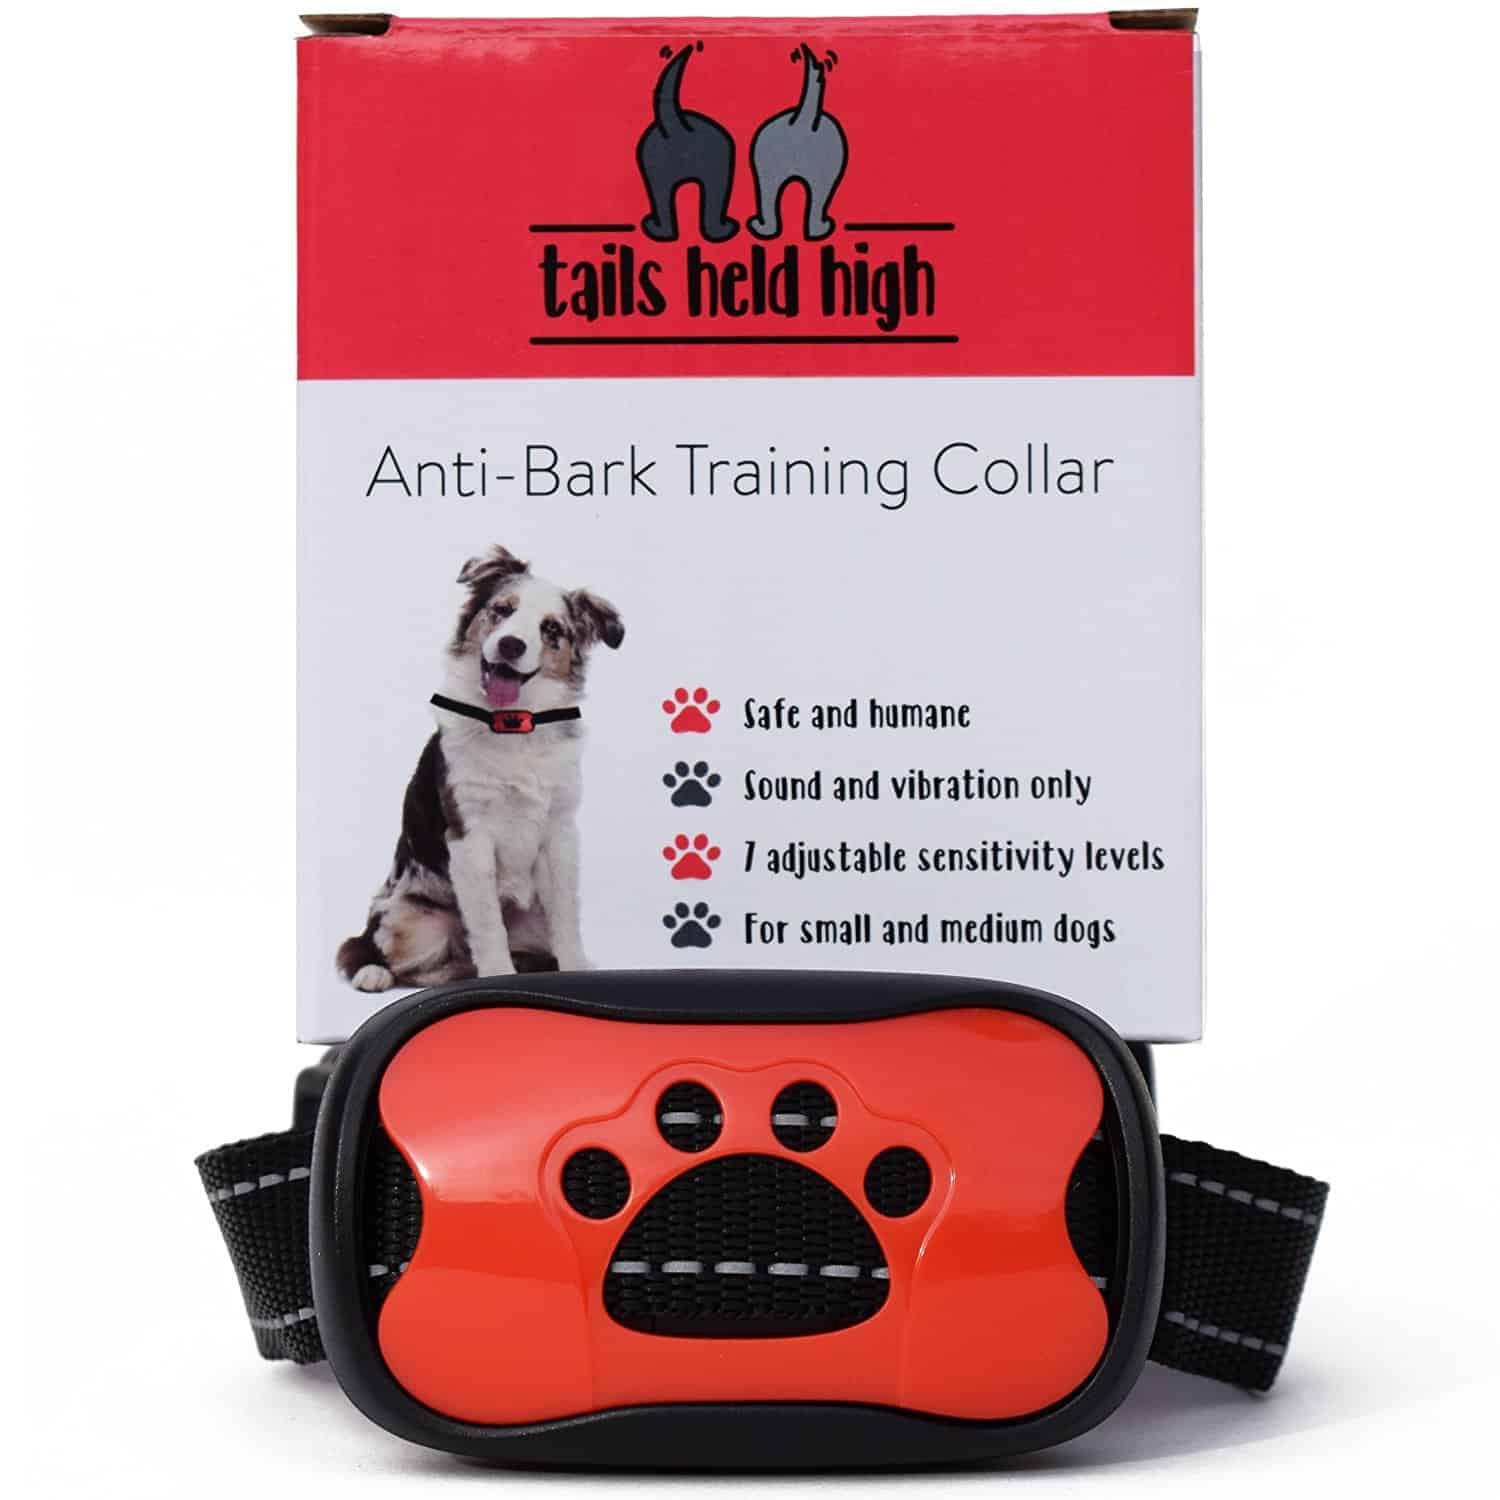 Best Hunting Dog Training Collar – Tails Held High